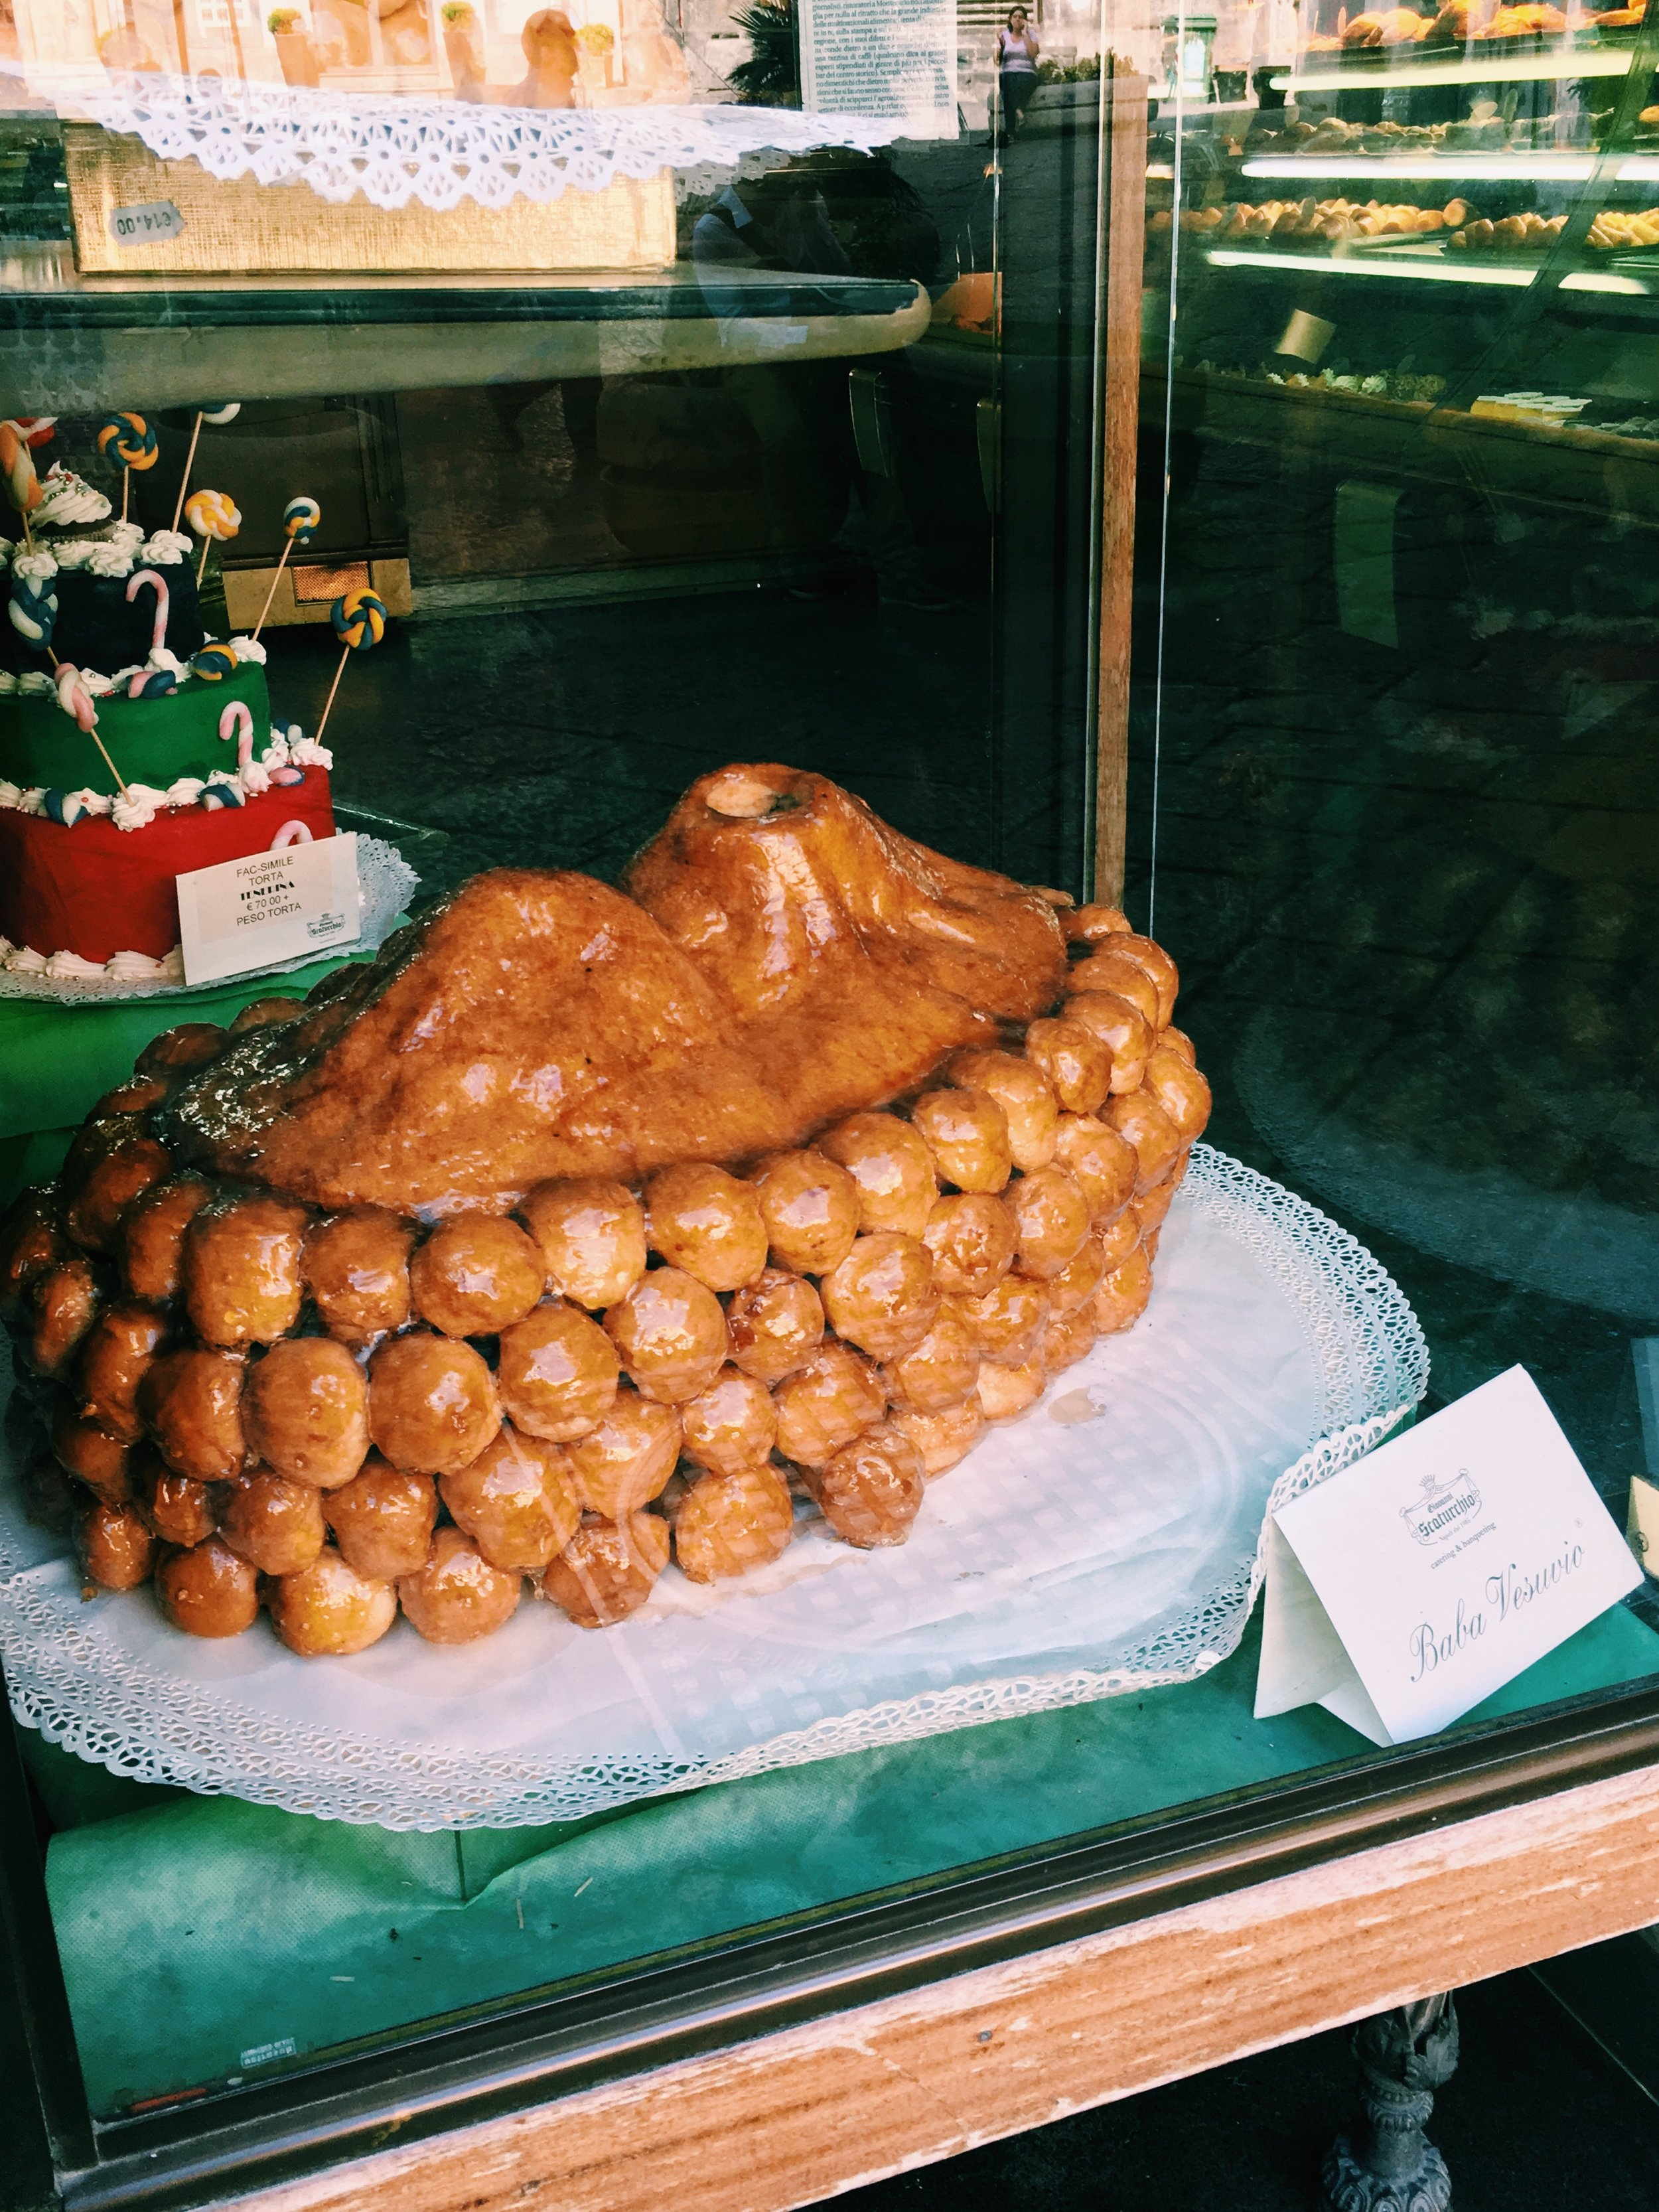 Baba al'Rum. In a sort of epic cake form. Will likely lead to an untimely death at unfashionably young age given levels of sugar and alcohol this cake is bathed in.